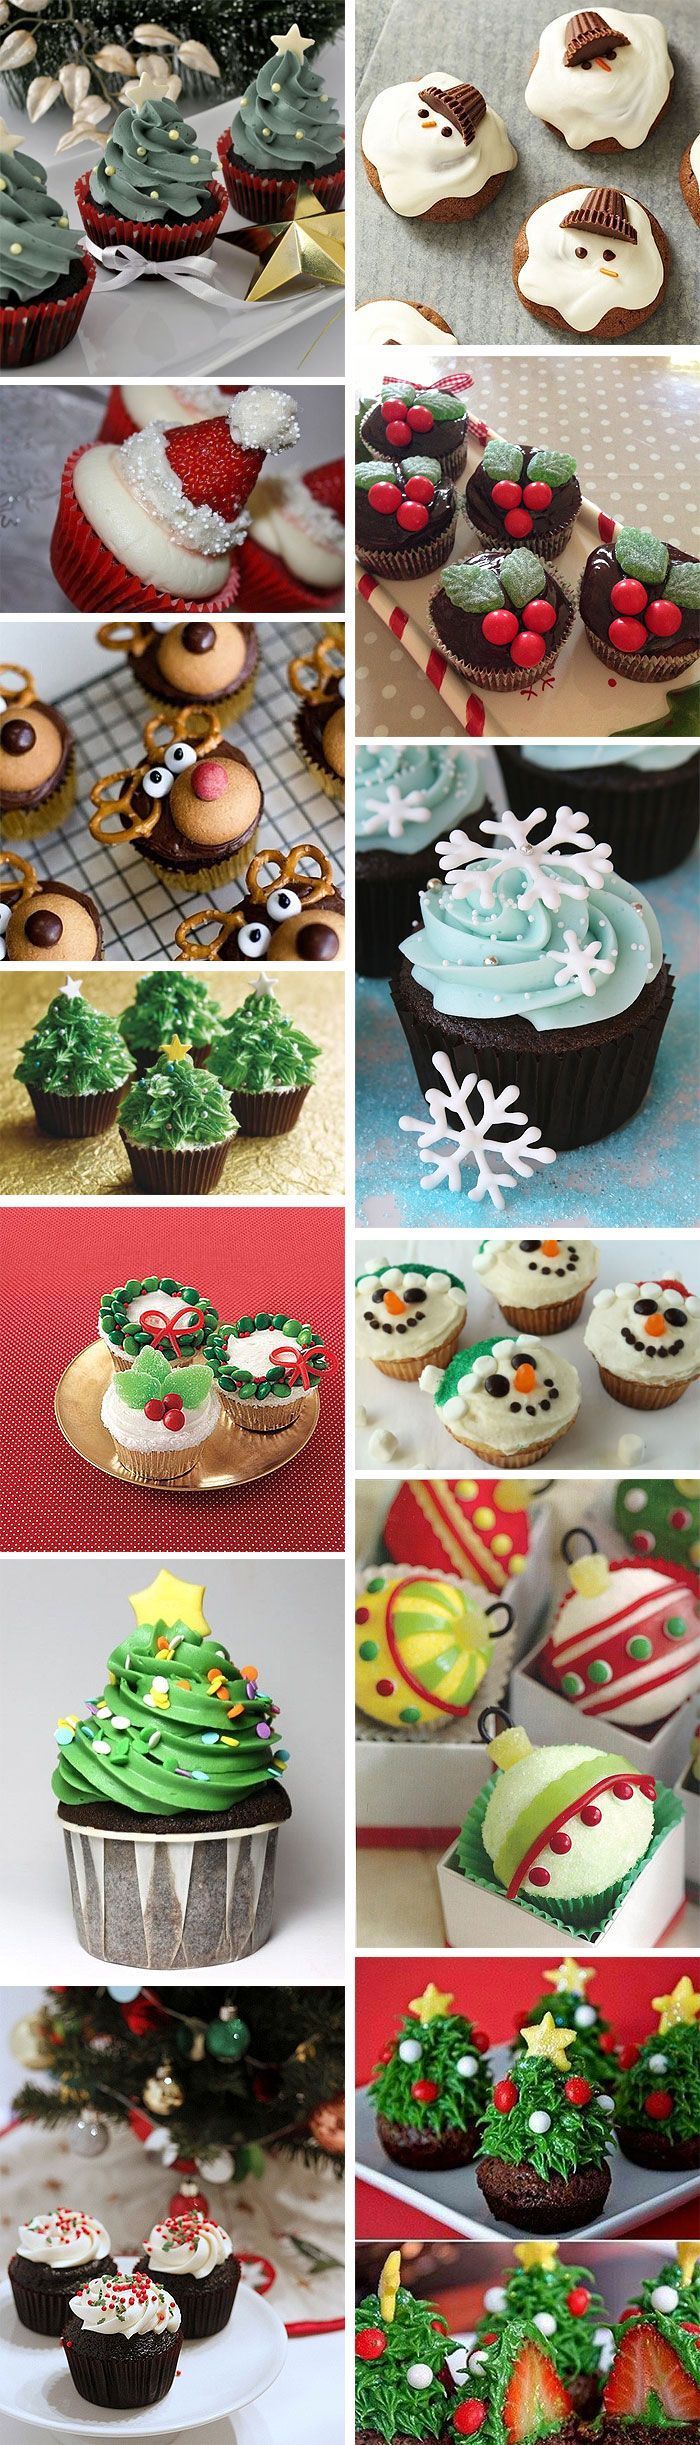 13 clever (and easy) Christmas cupcake decorating ideas-how to decorate Christmas cupcakes - http://www.amazon.de/dp/B011TOV7Z2 http://www.amazon.co.uk/dp/B011TOV7Z2: